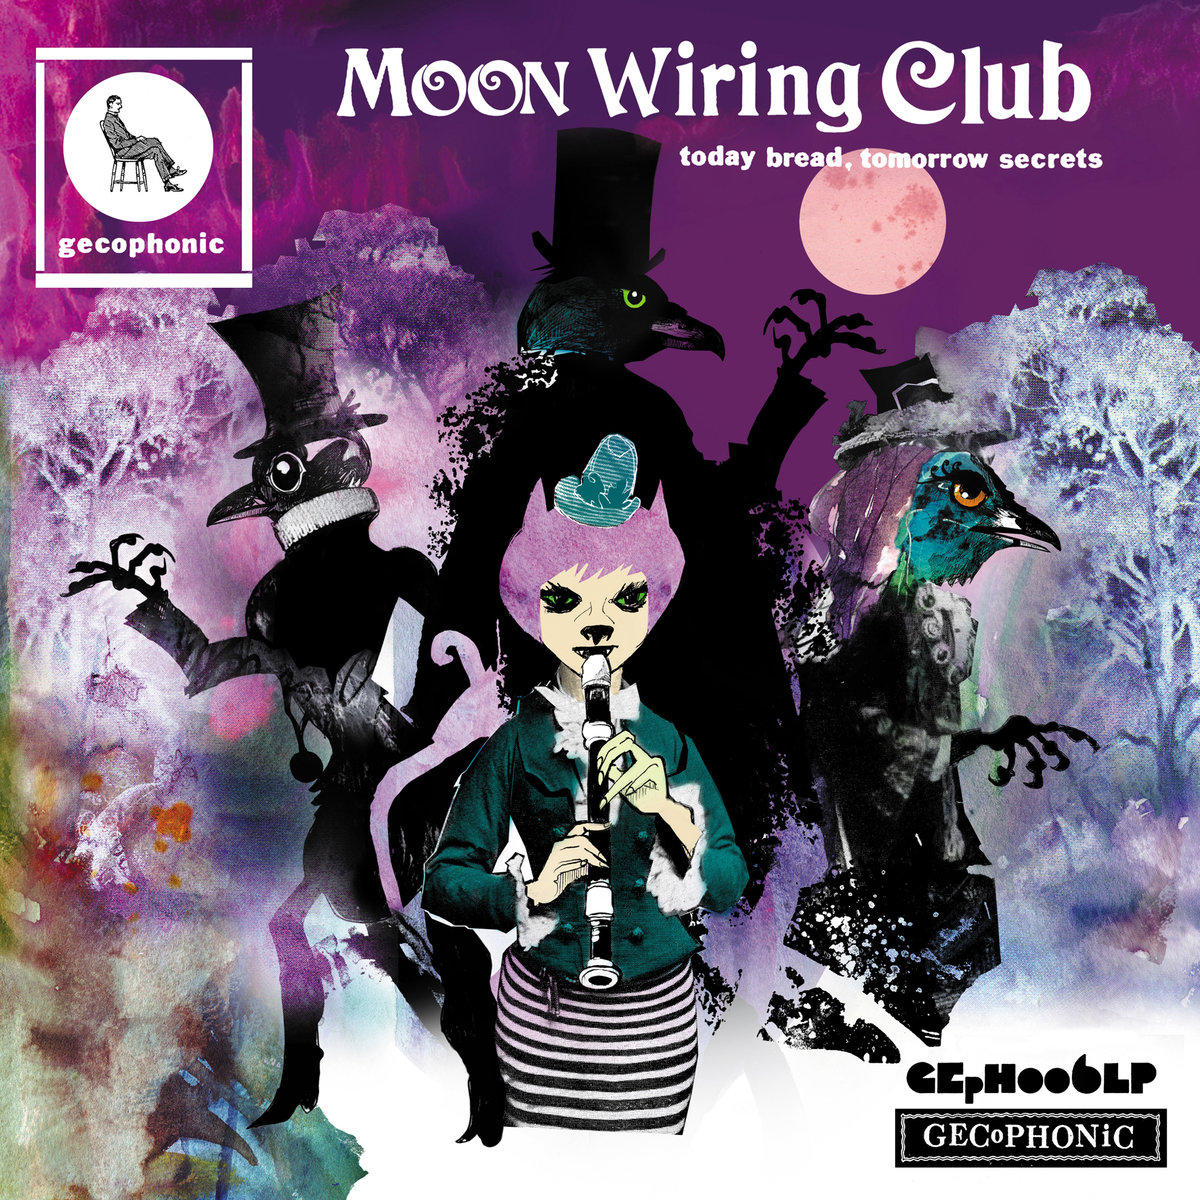 Moon Wiring Club's interview, best kept secret (part 2)